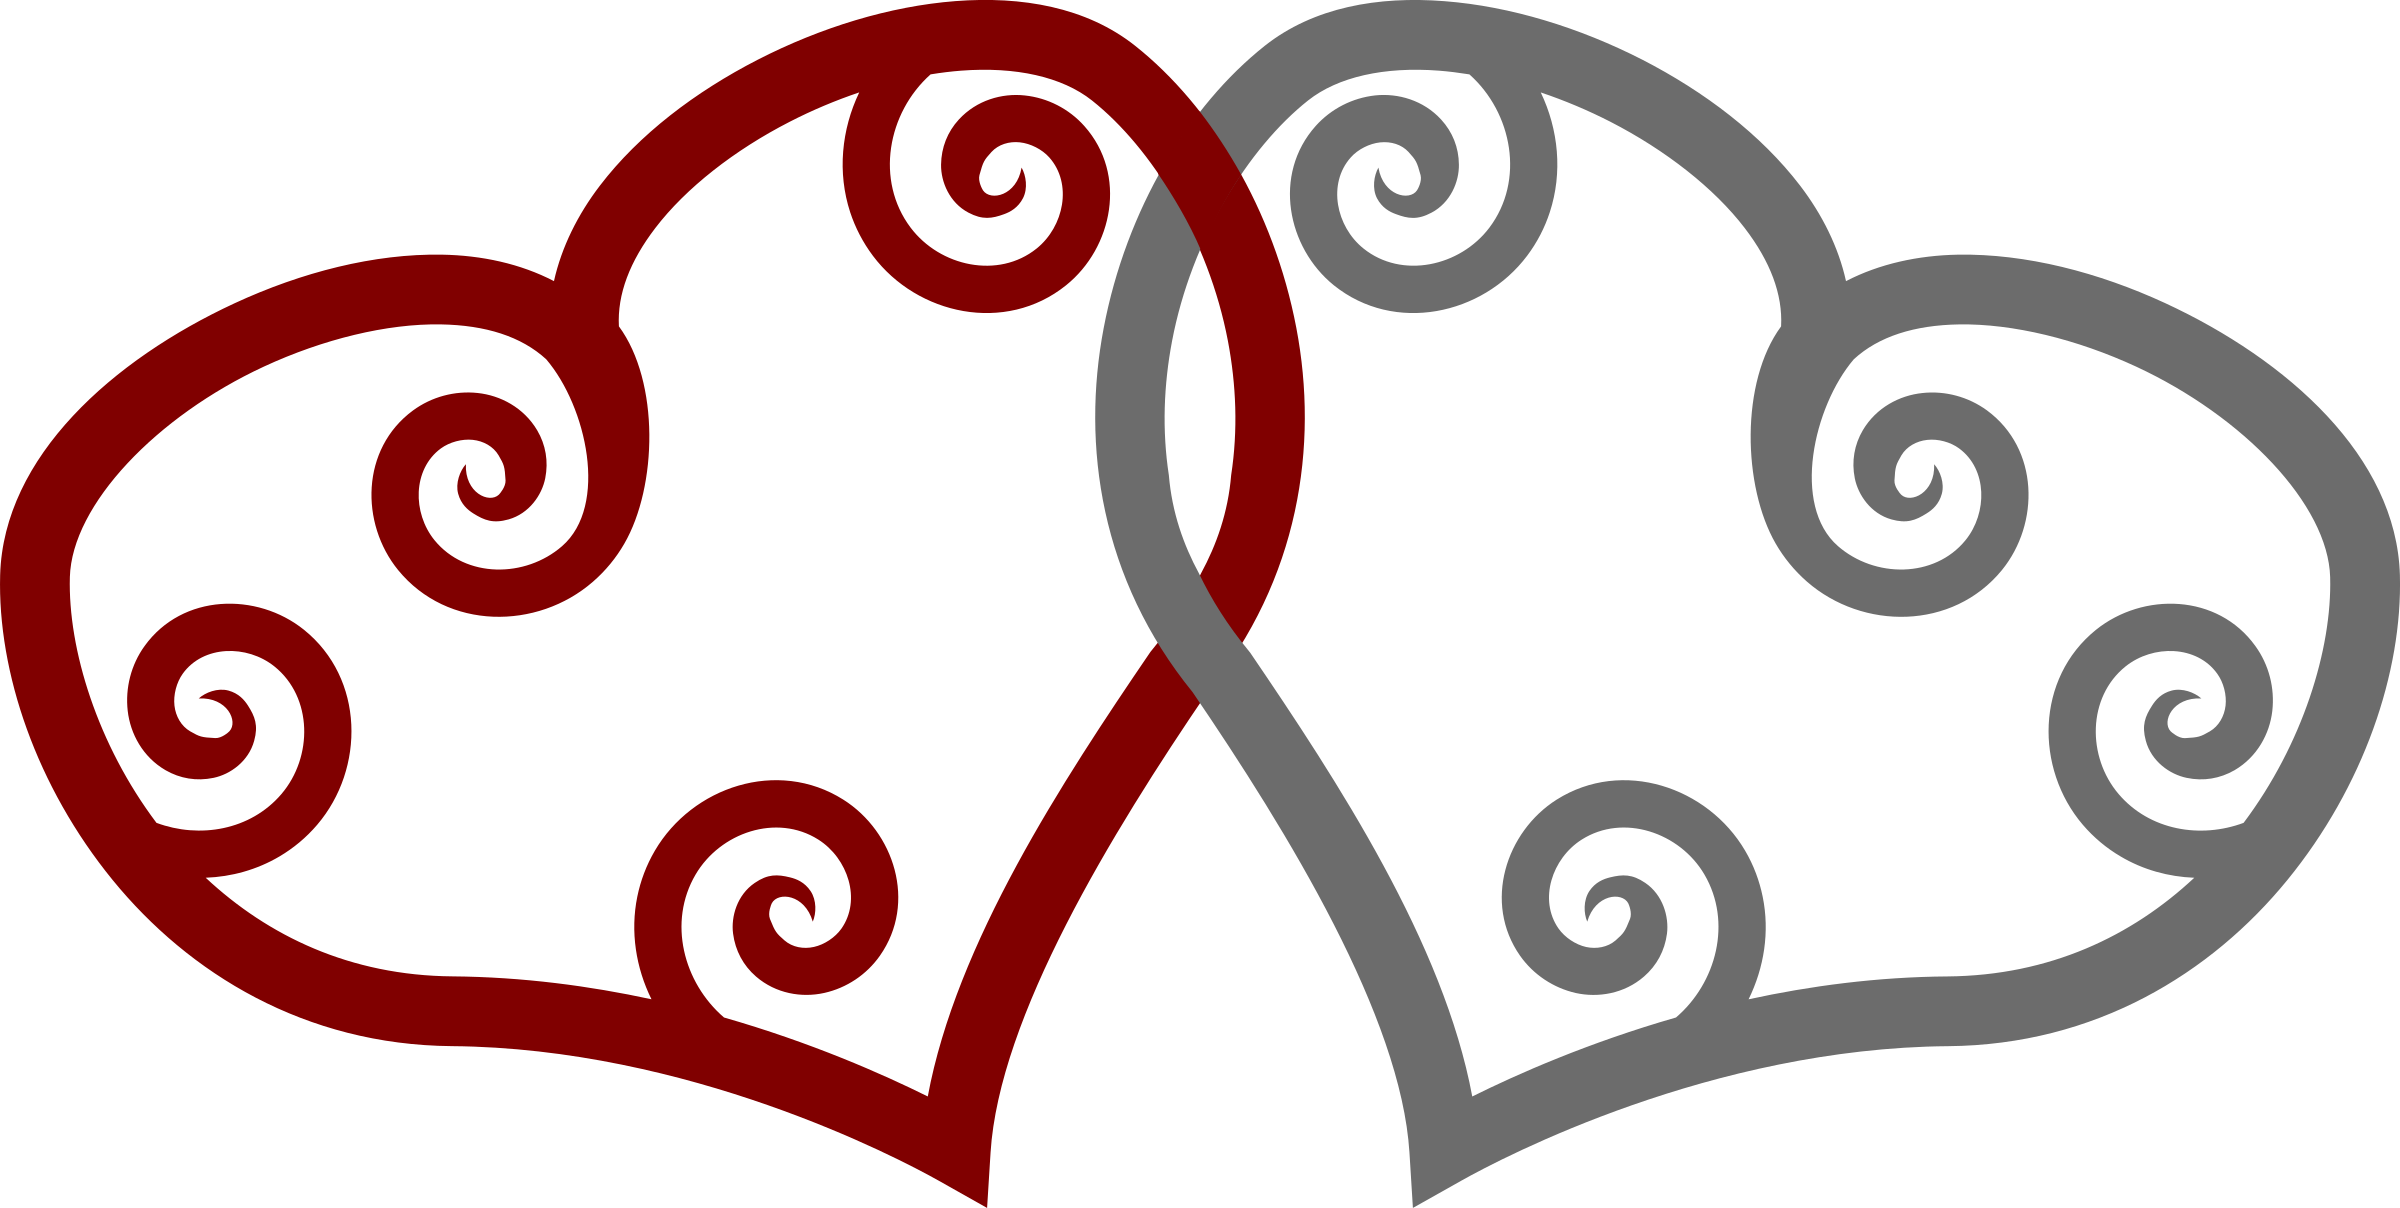 Clipart - Red & Silver Maori Hearts Interlinked